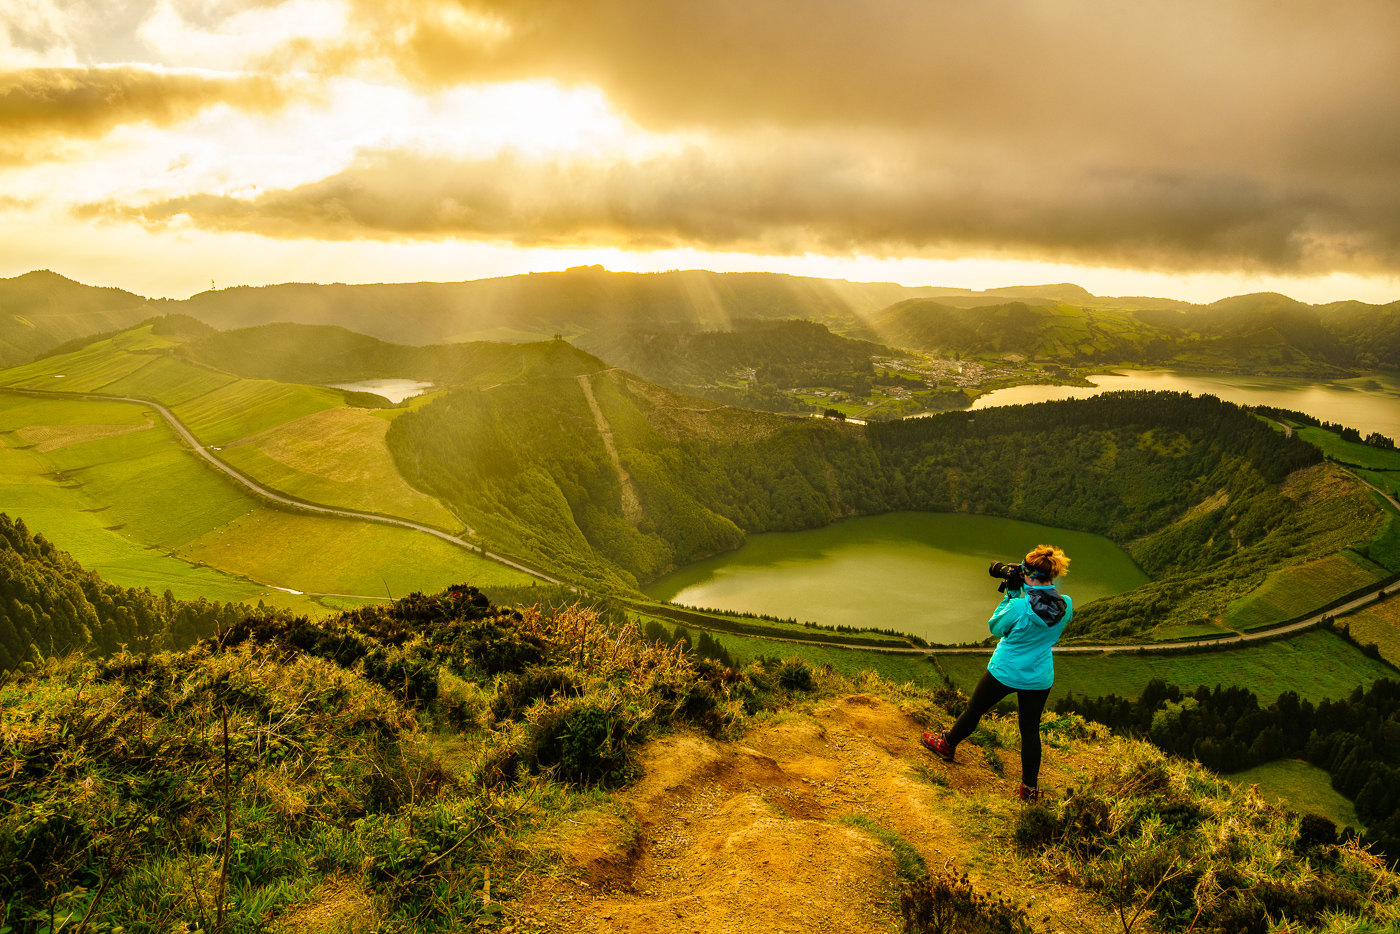 The Azores - The Hawaii of Europe - May 14-21